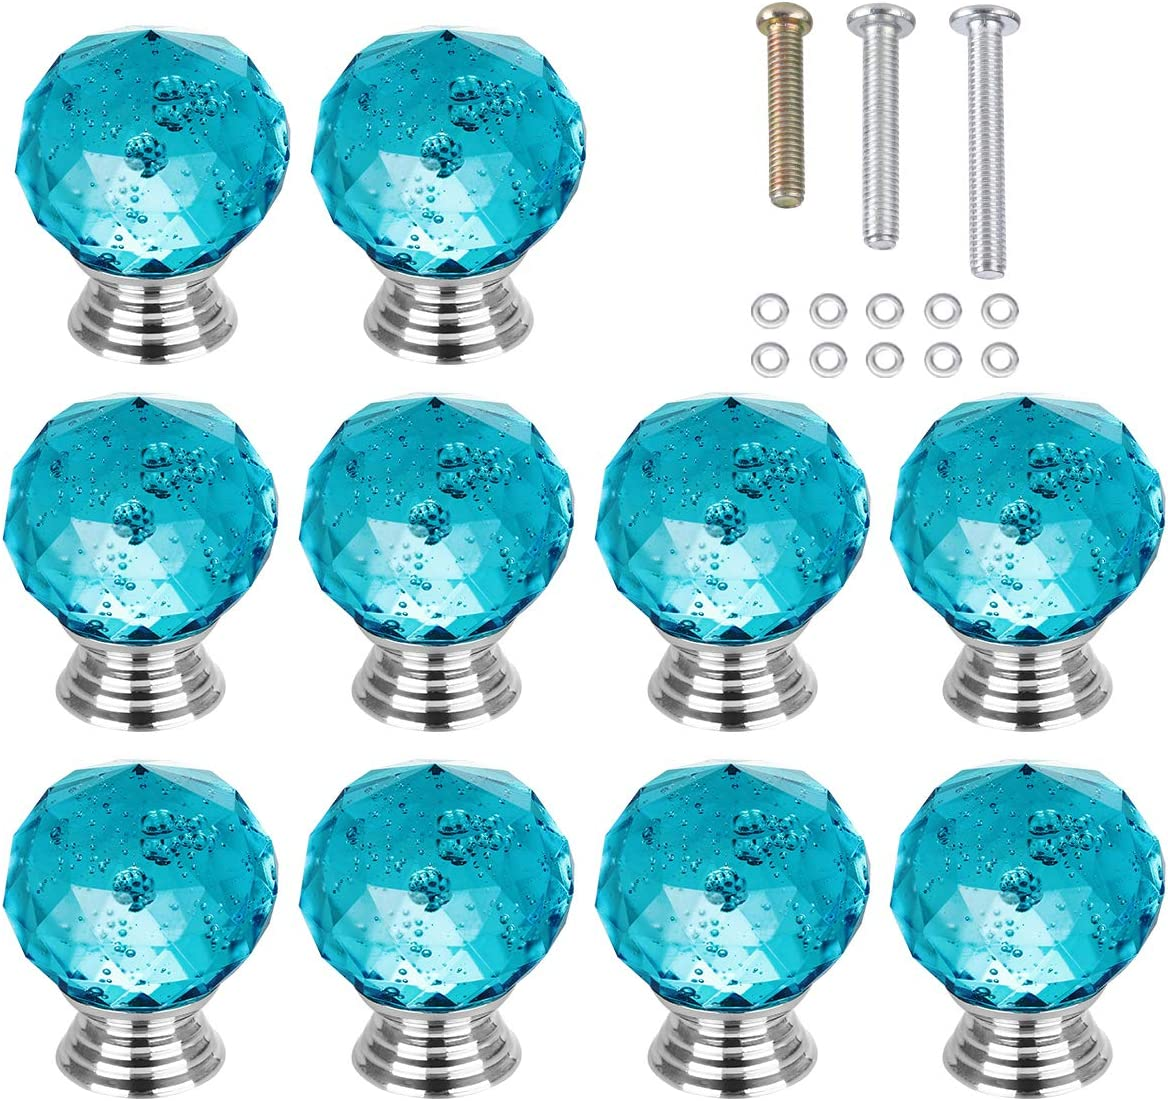 HOMEIDEAS 10PCS 30MM Round Blue Bubbles Crystal Drawer Knobs Glass Cabinet Knobs Drawer Pulls Handle for Home, Cabinet, Cupboard and Dresser, 3 Size Screws